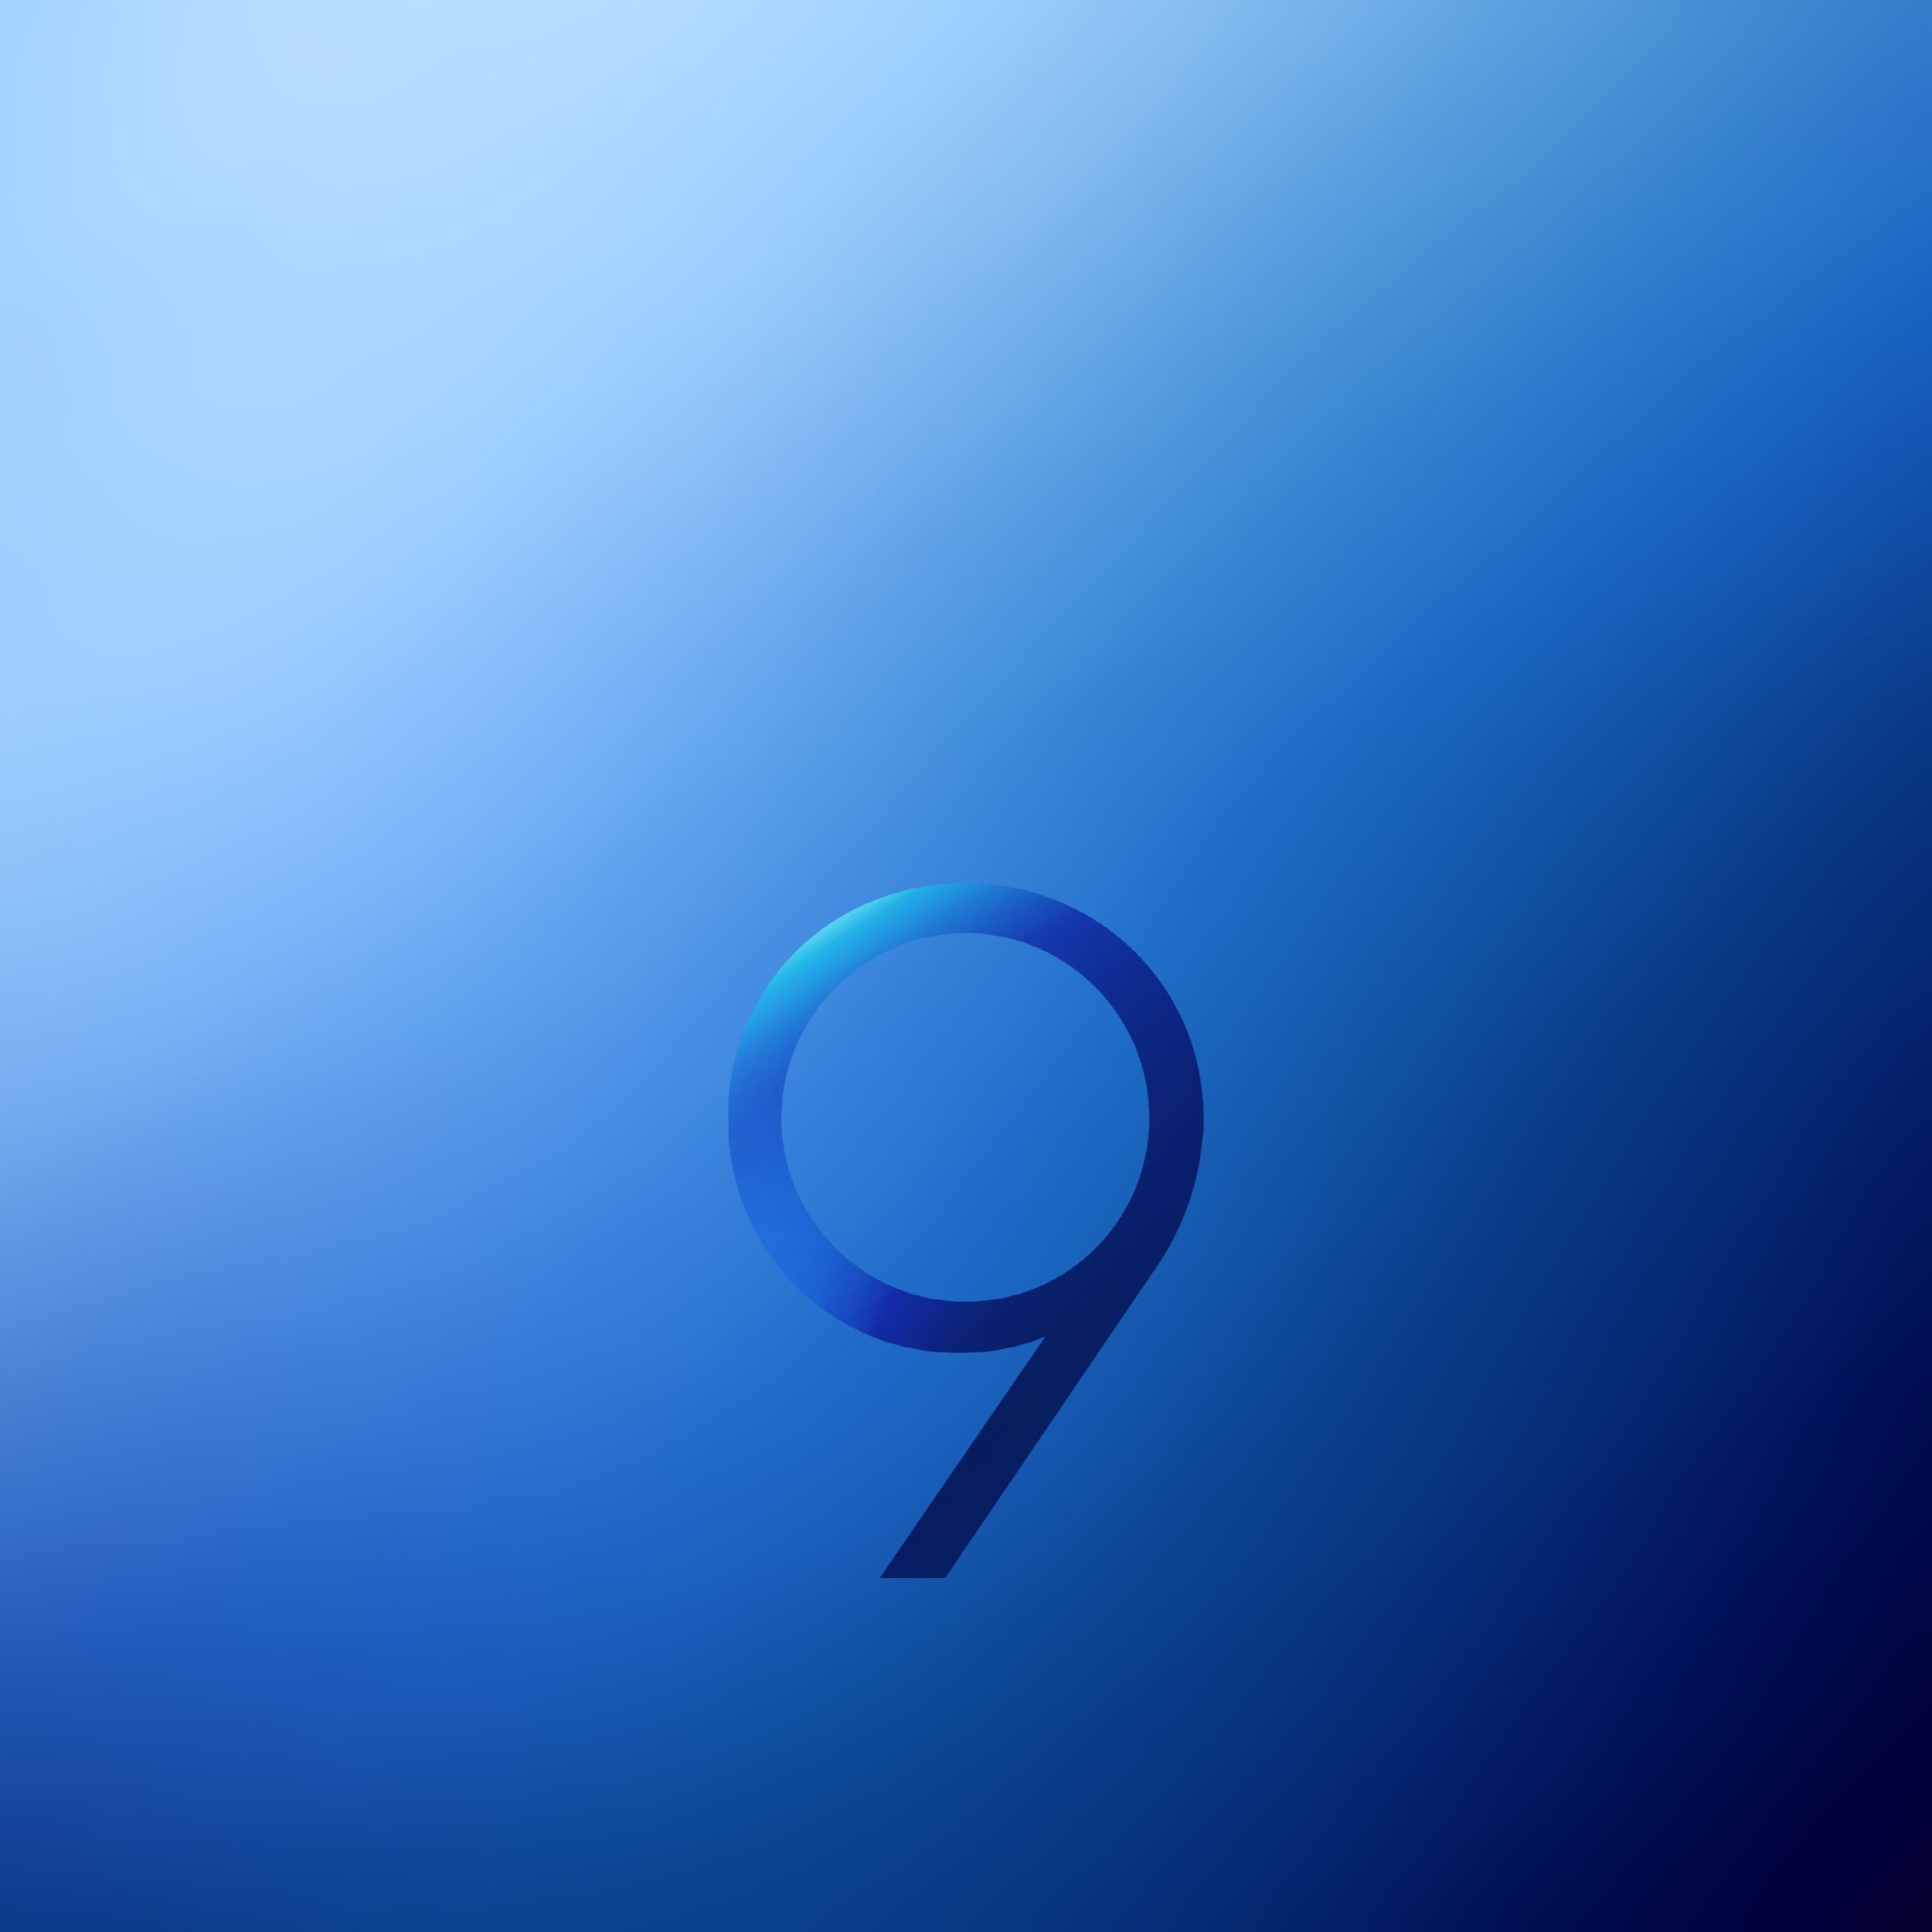 Samsung Galaxy S9 Stock Wallpapers (13)